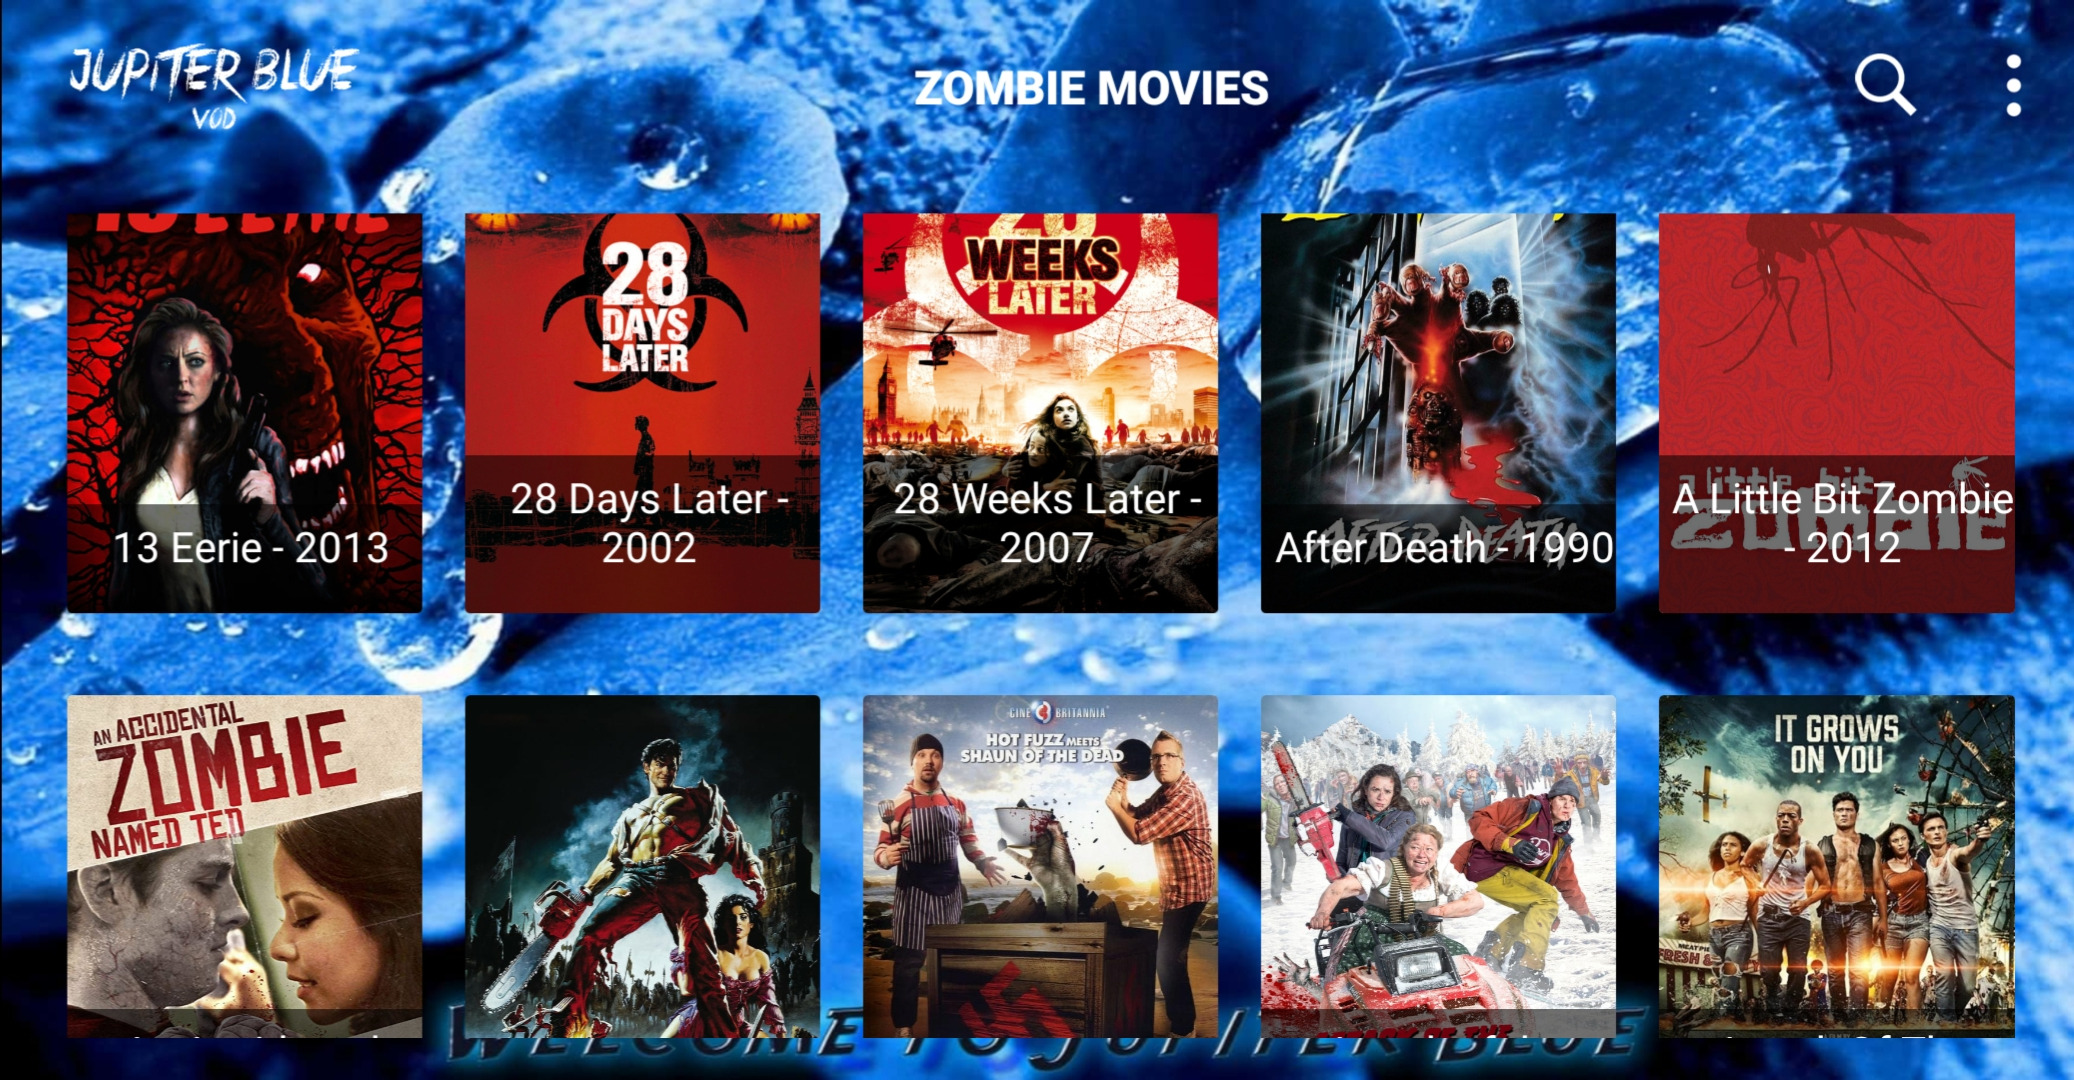 Your Favorite Zombie movies